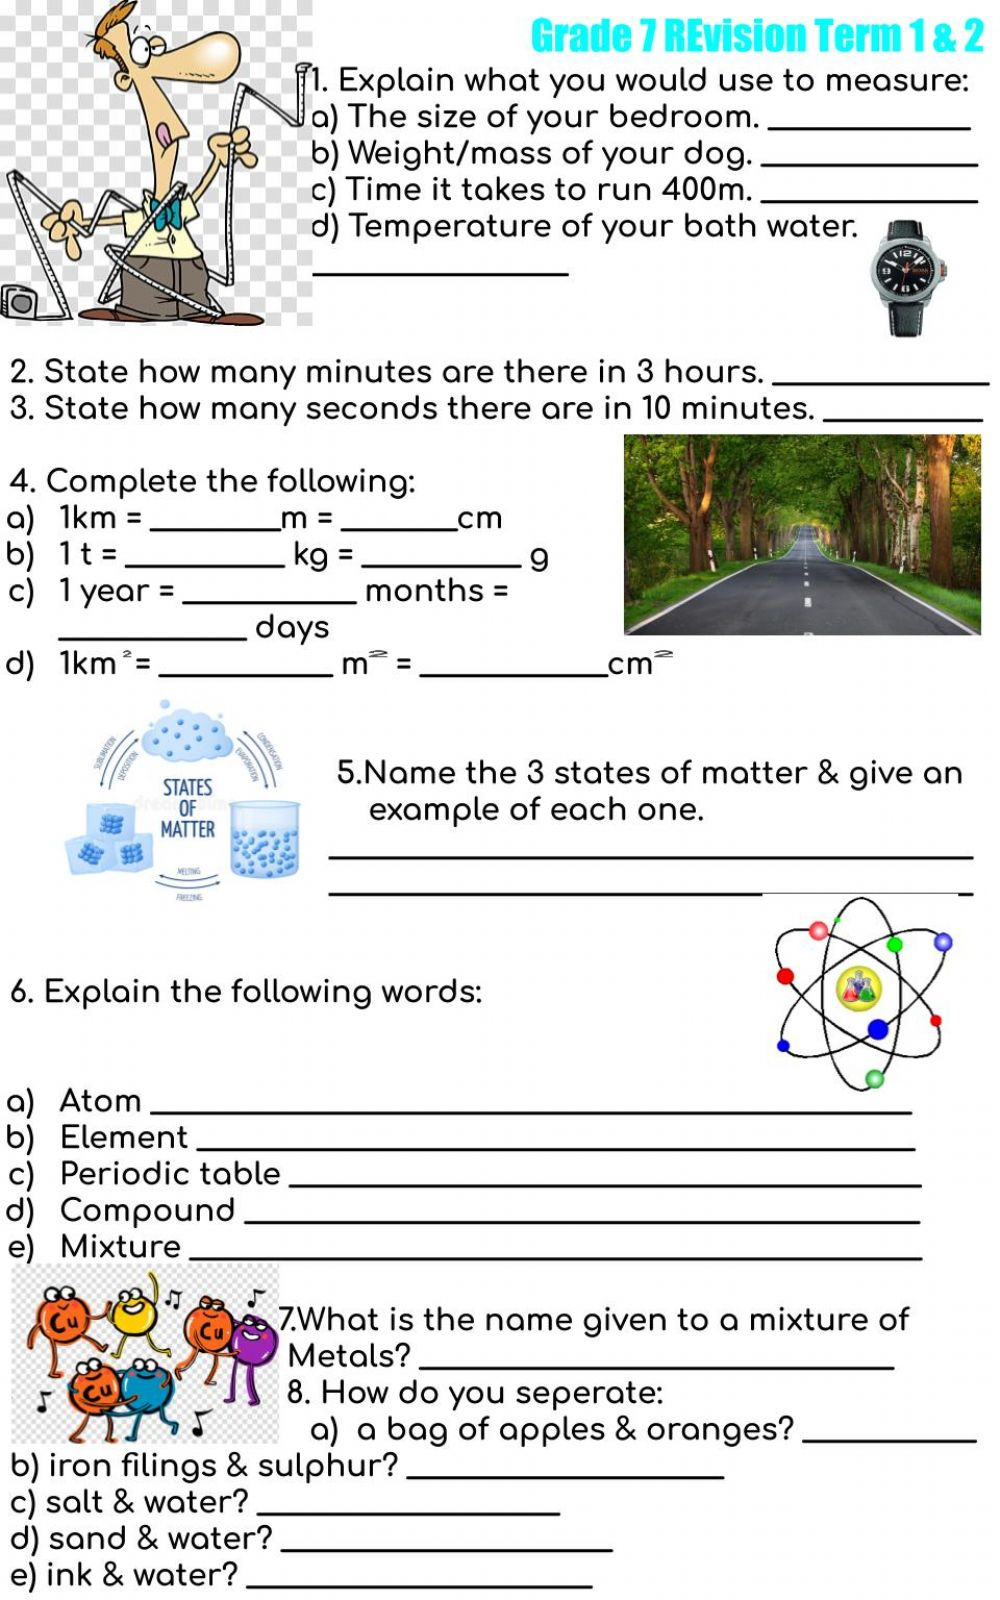 hight resolution of Revision term 1 \u0026 2 interactive worksheet